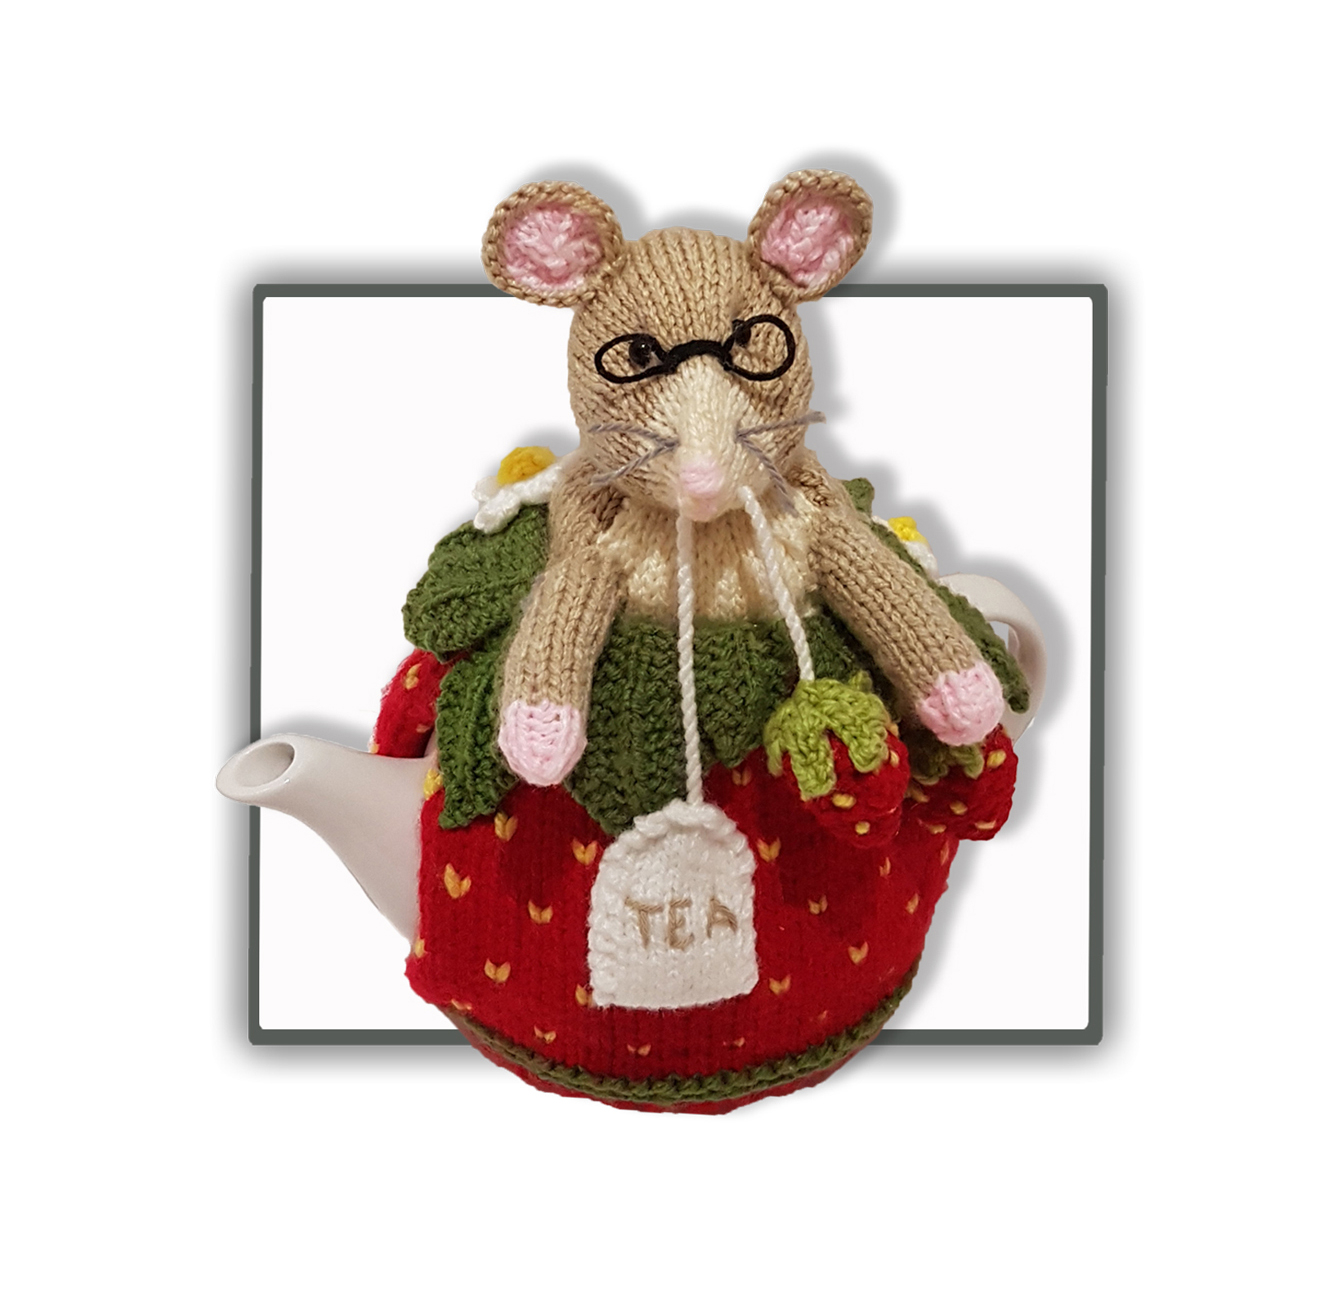 Tea Cosy Knitting Patterns Easy Strawberry Dormouse Tea Cosy Pdf Knitting Pattern